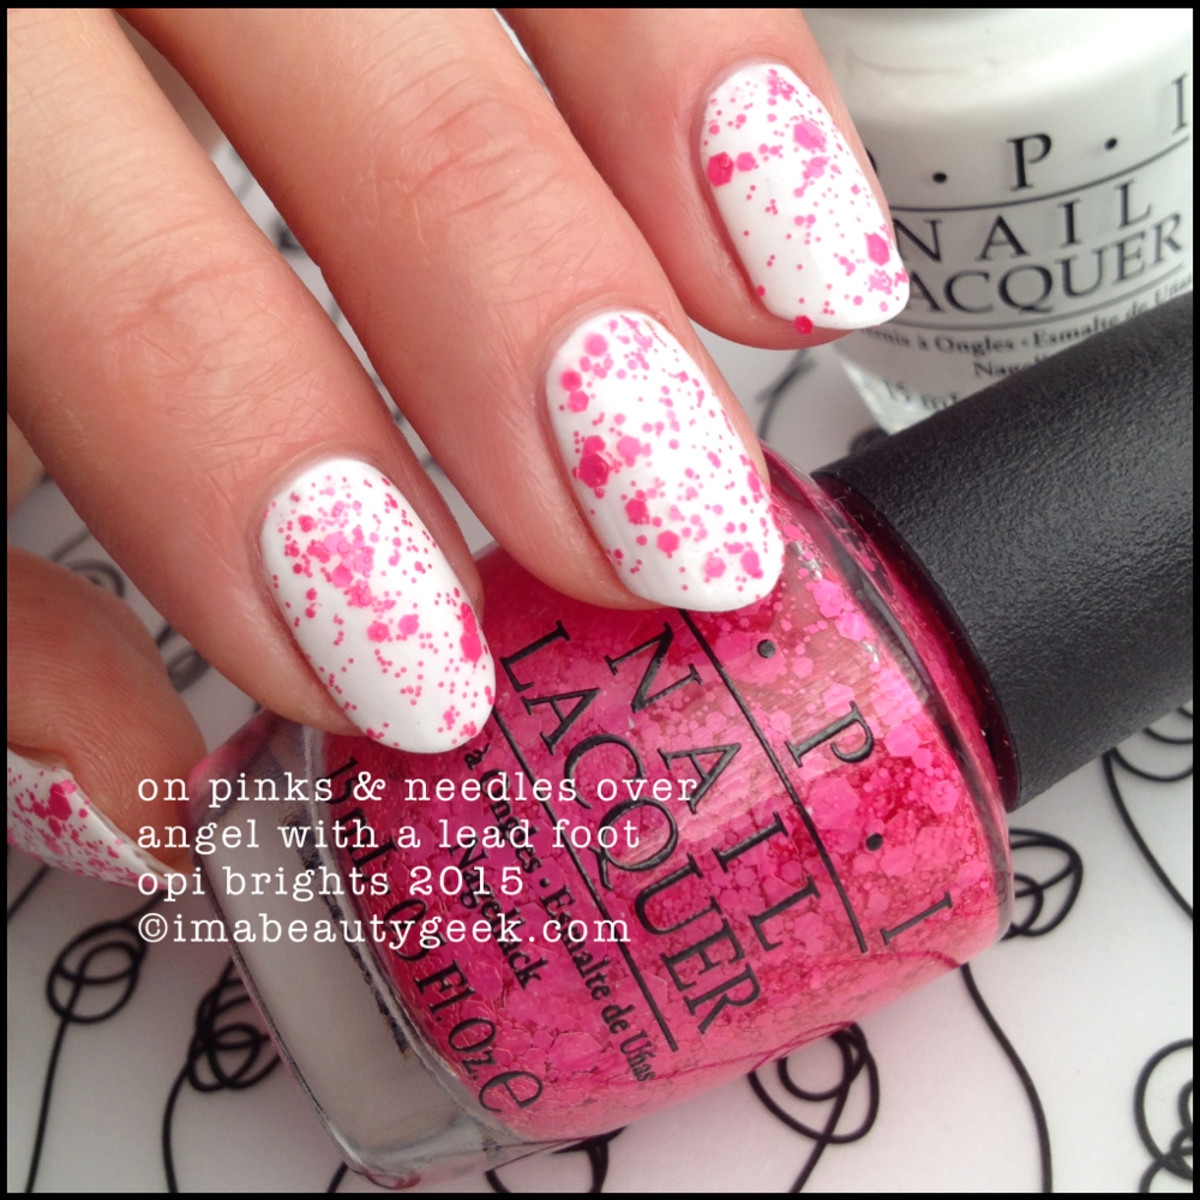 OPI Brights 2015_On Pinks & Needles over OPI Angel with a Lead Foot